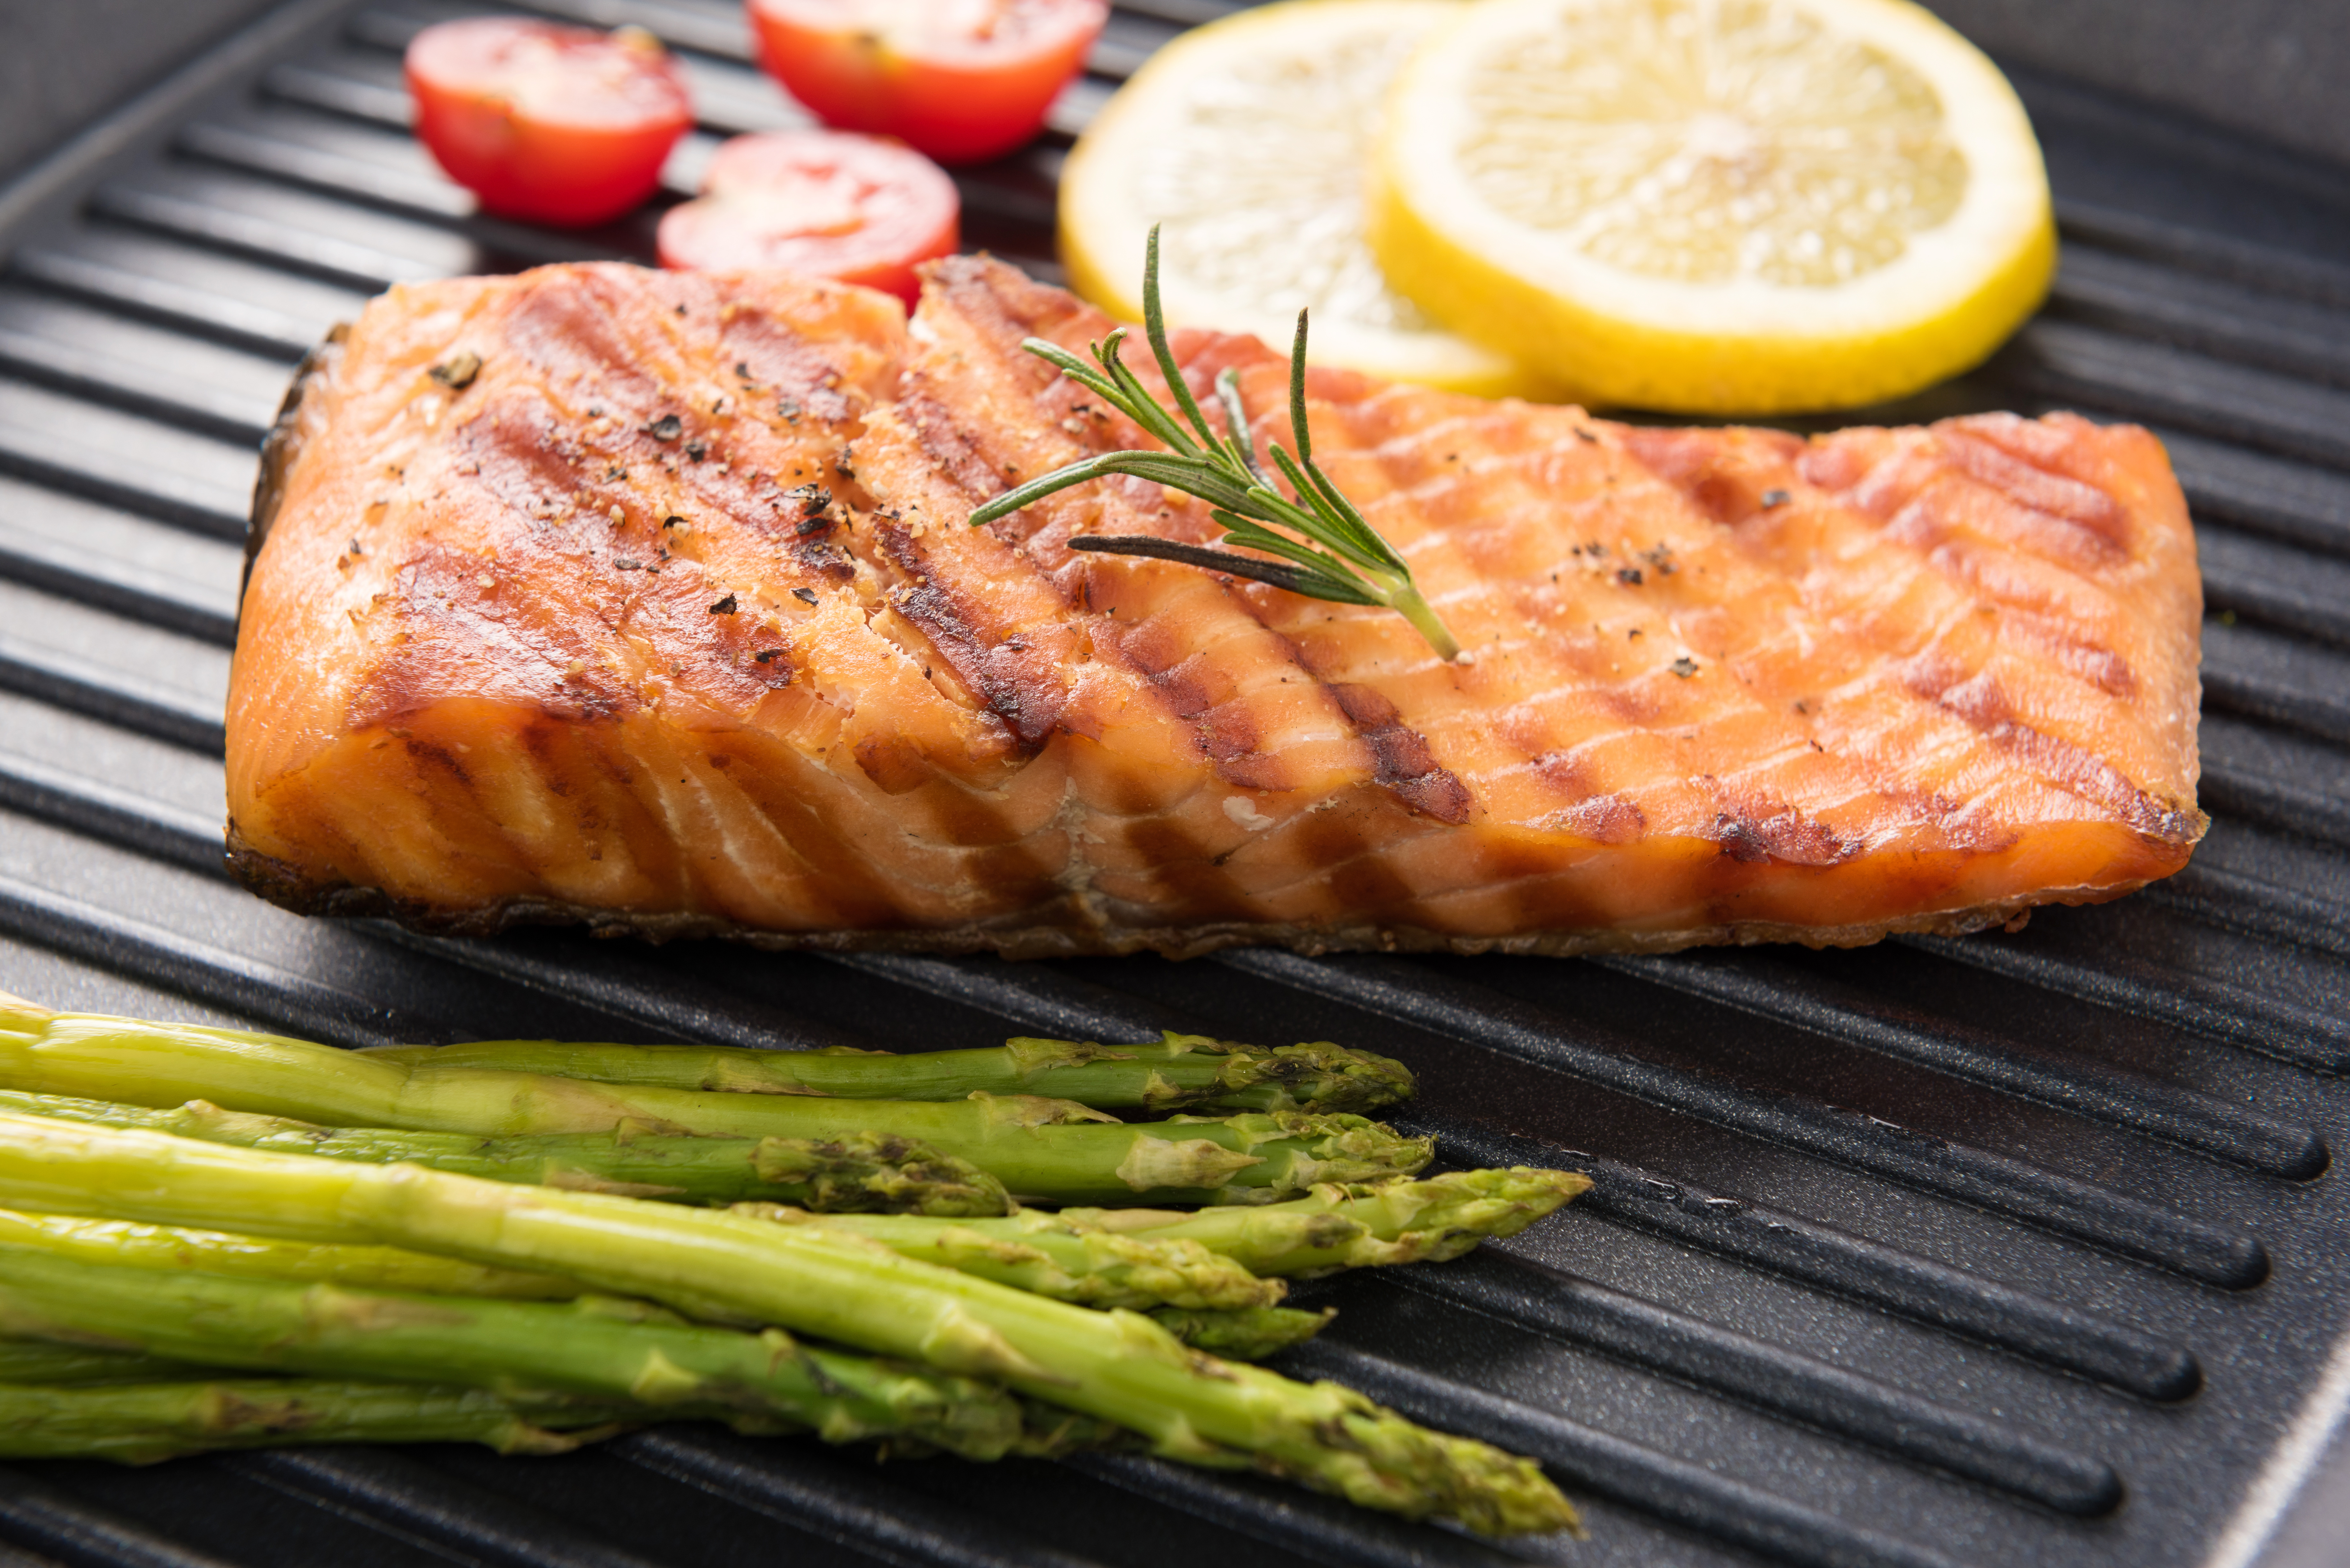 Jamie 39 s 1 minute tips how to grill a fish fillet for How to grill fish fillet